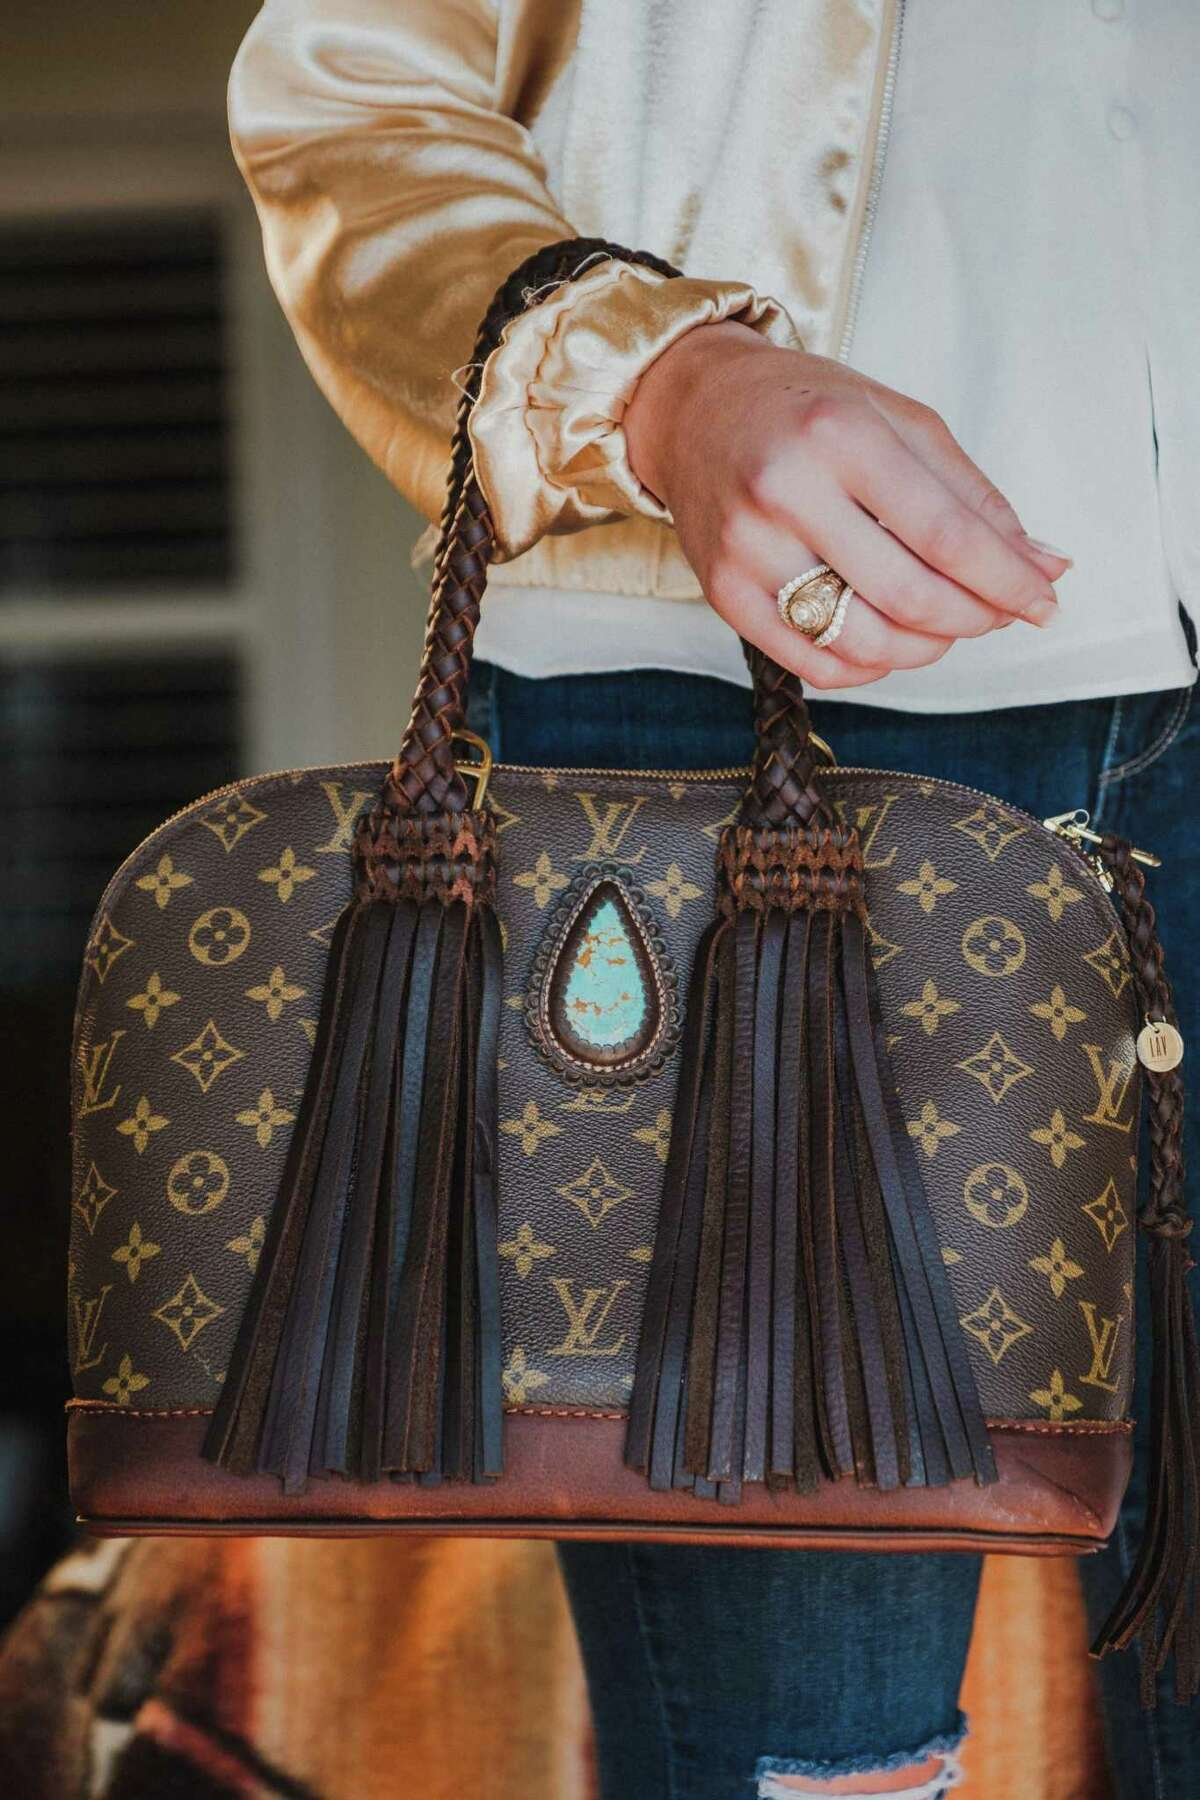 Kay McMurtre usually takes 40 enhanced Louis Vuitton bags to the antiques shows at Marburger Farm and Zapp Hall. They range in cost from $1,250 to $6,000.